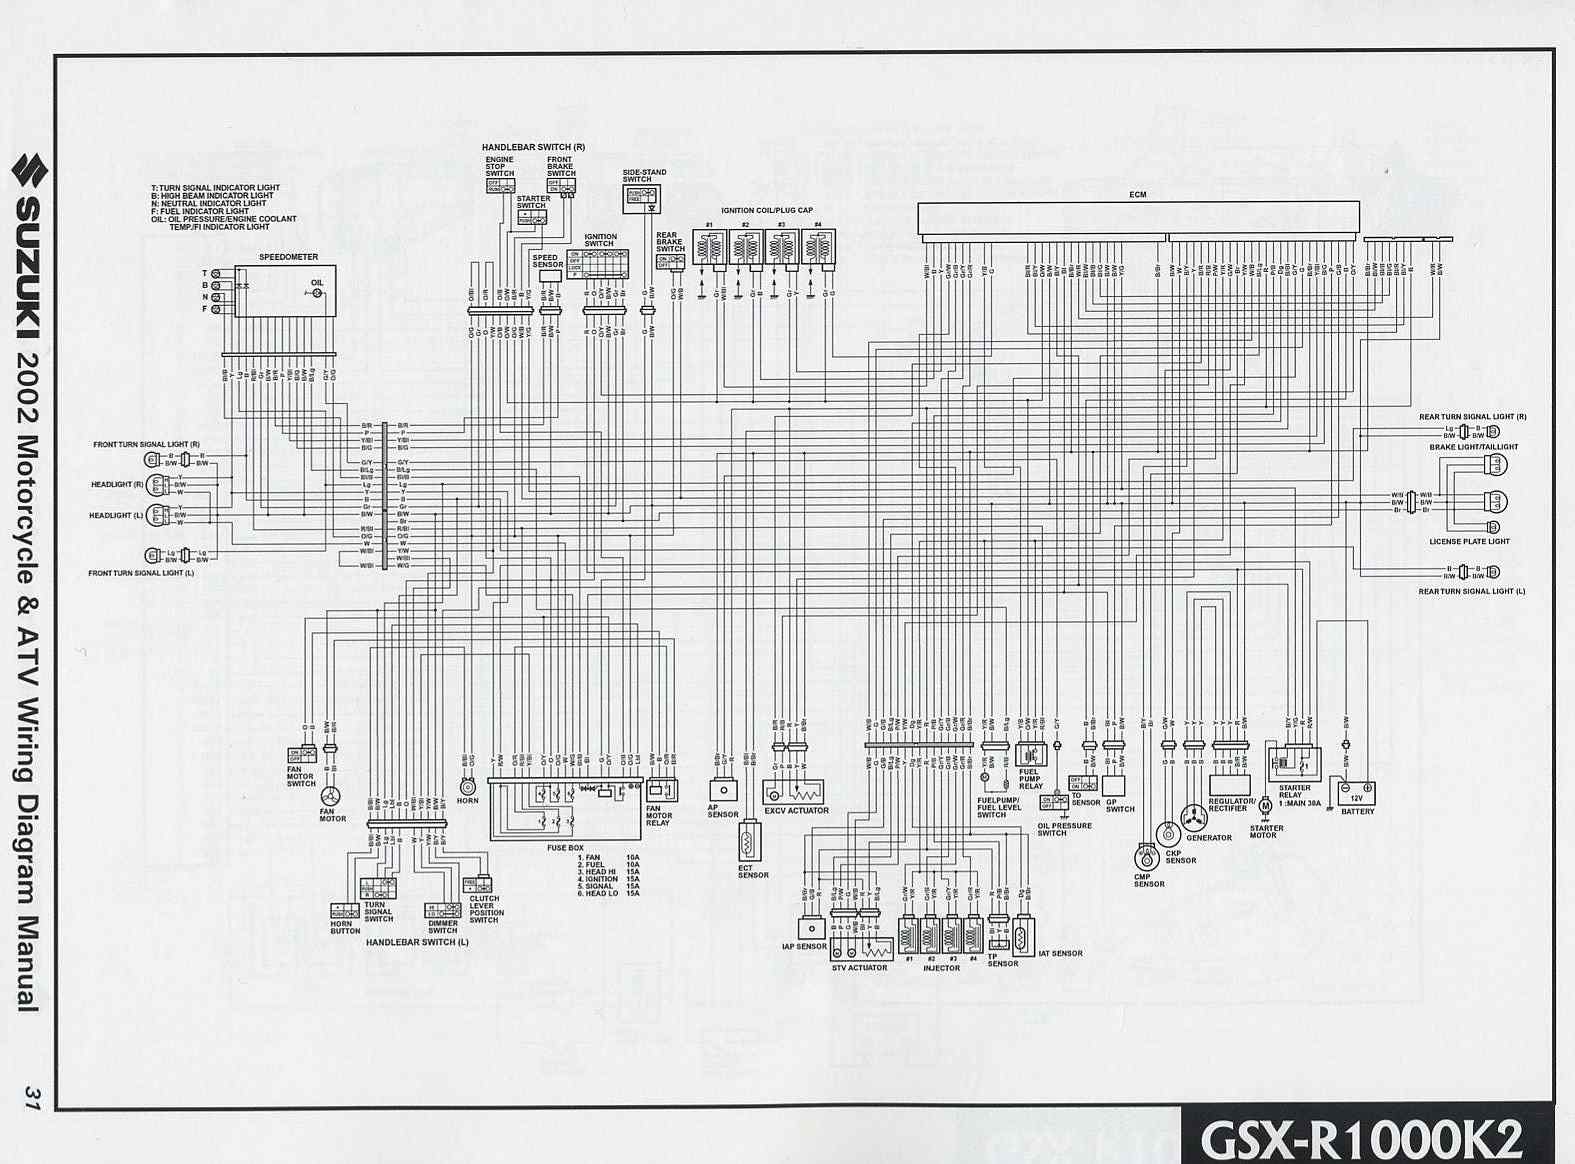 2006 Suzuki Gsxr 750 Ignition Wiring Diagram: Wiring diagram cooling fan suzuki gsxr 750rh:svlc.us,Design